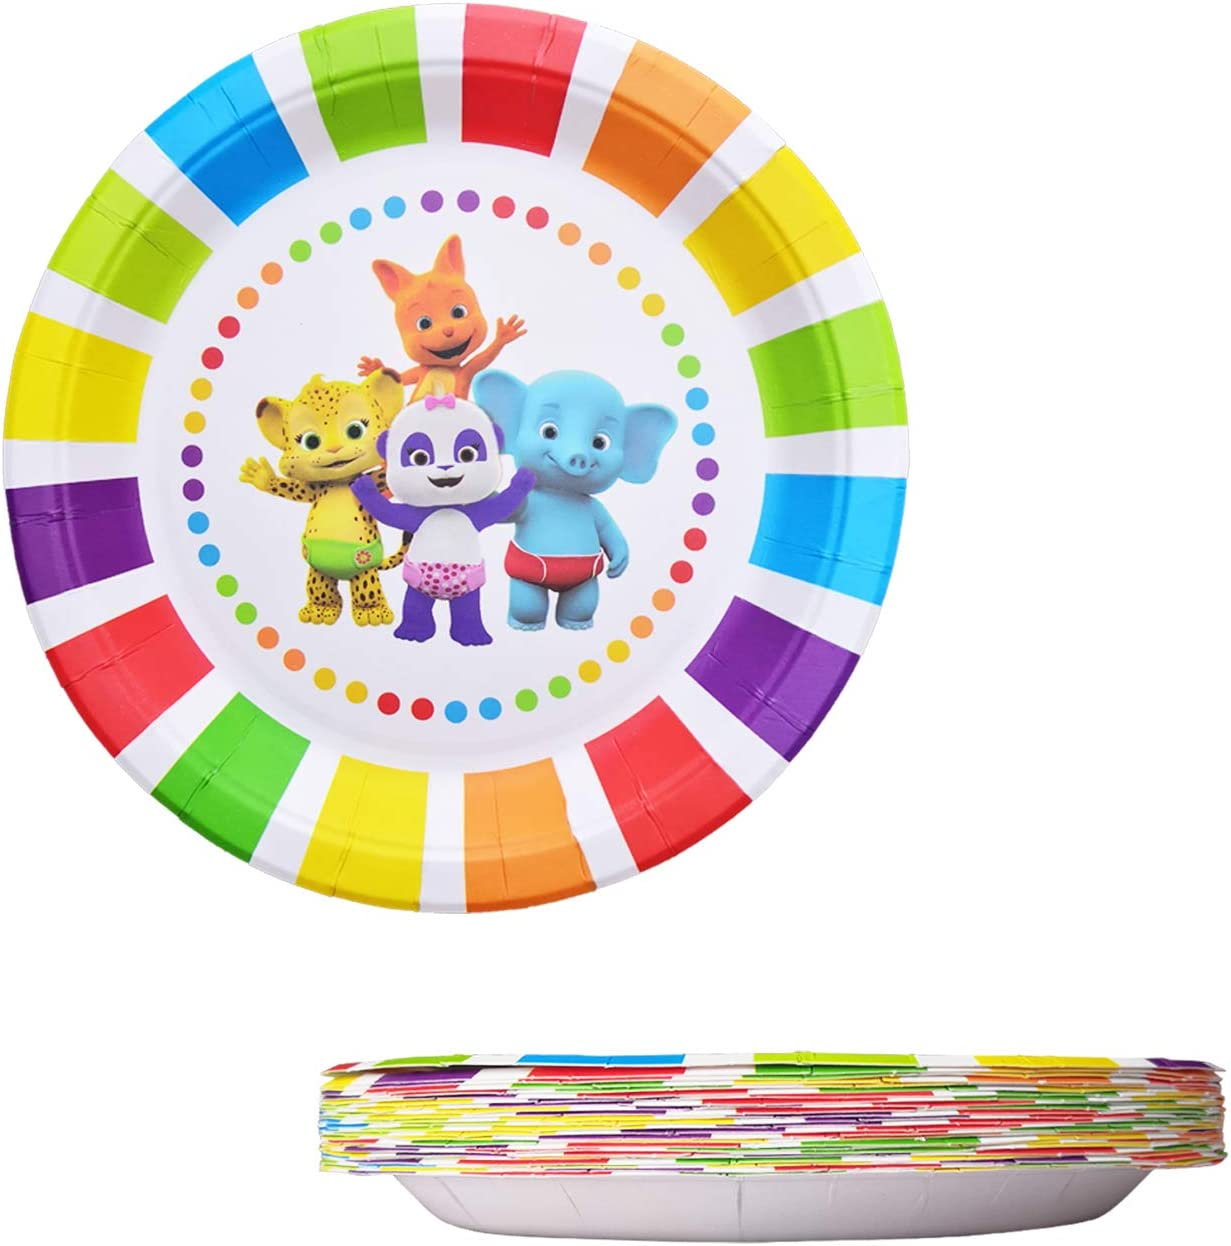 Birthday Party Supplies Decorations 24 Packs Plates for Word Party Plates Birthday Disposable Plates